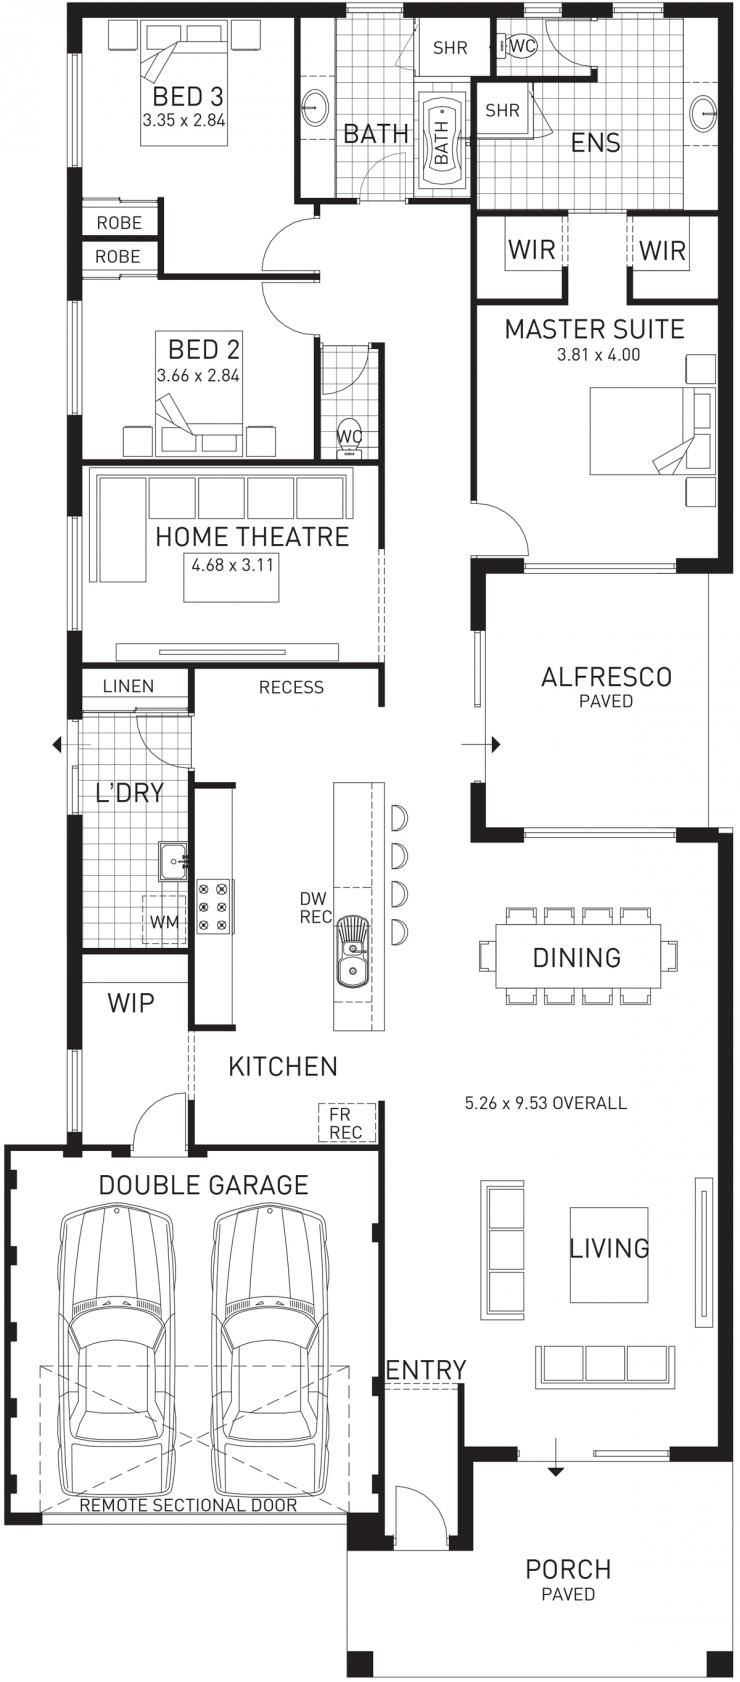 Cottesloe beach single storey home design master floor plan wa building plans metal also rh ar pinterest